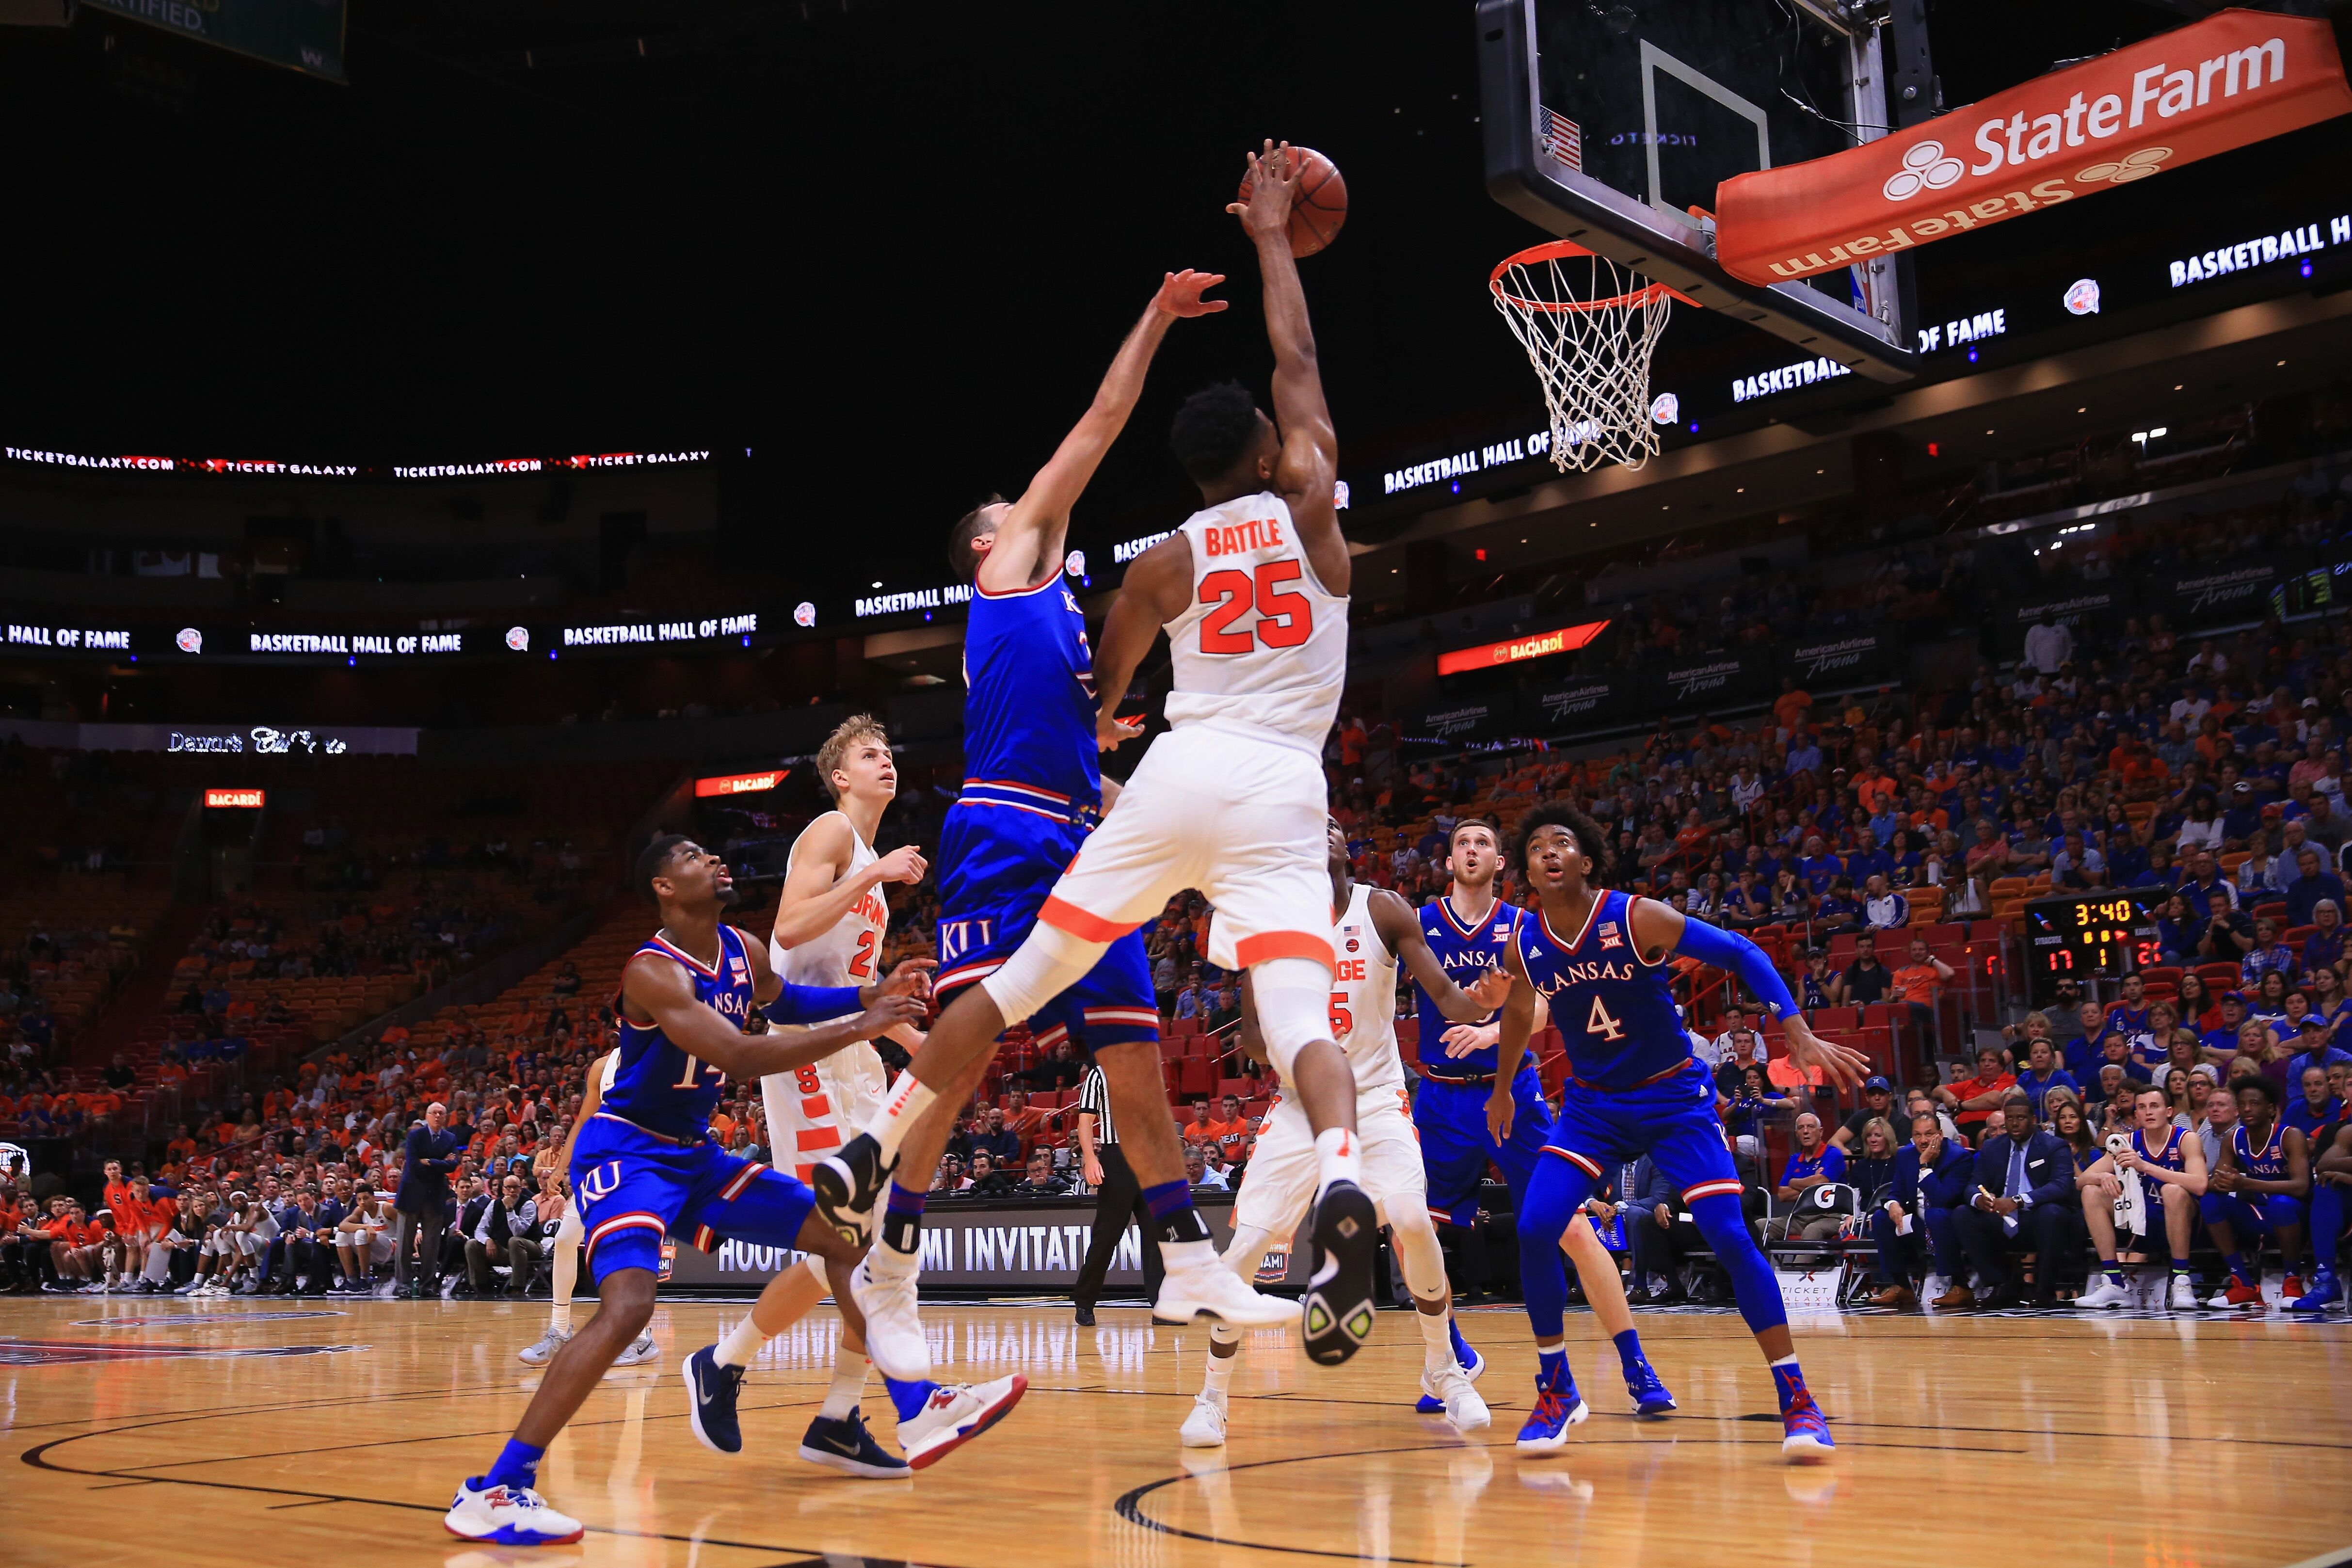 Don T Be Fooled By Saturday S Loss Syracuse Basketball Is Back